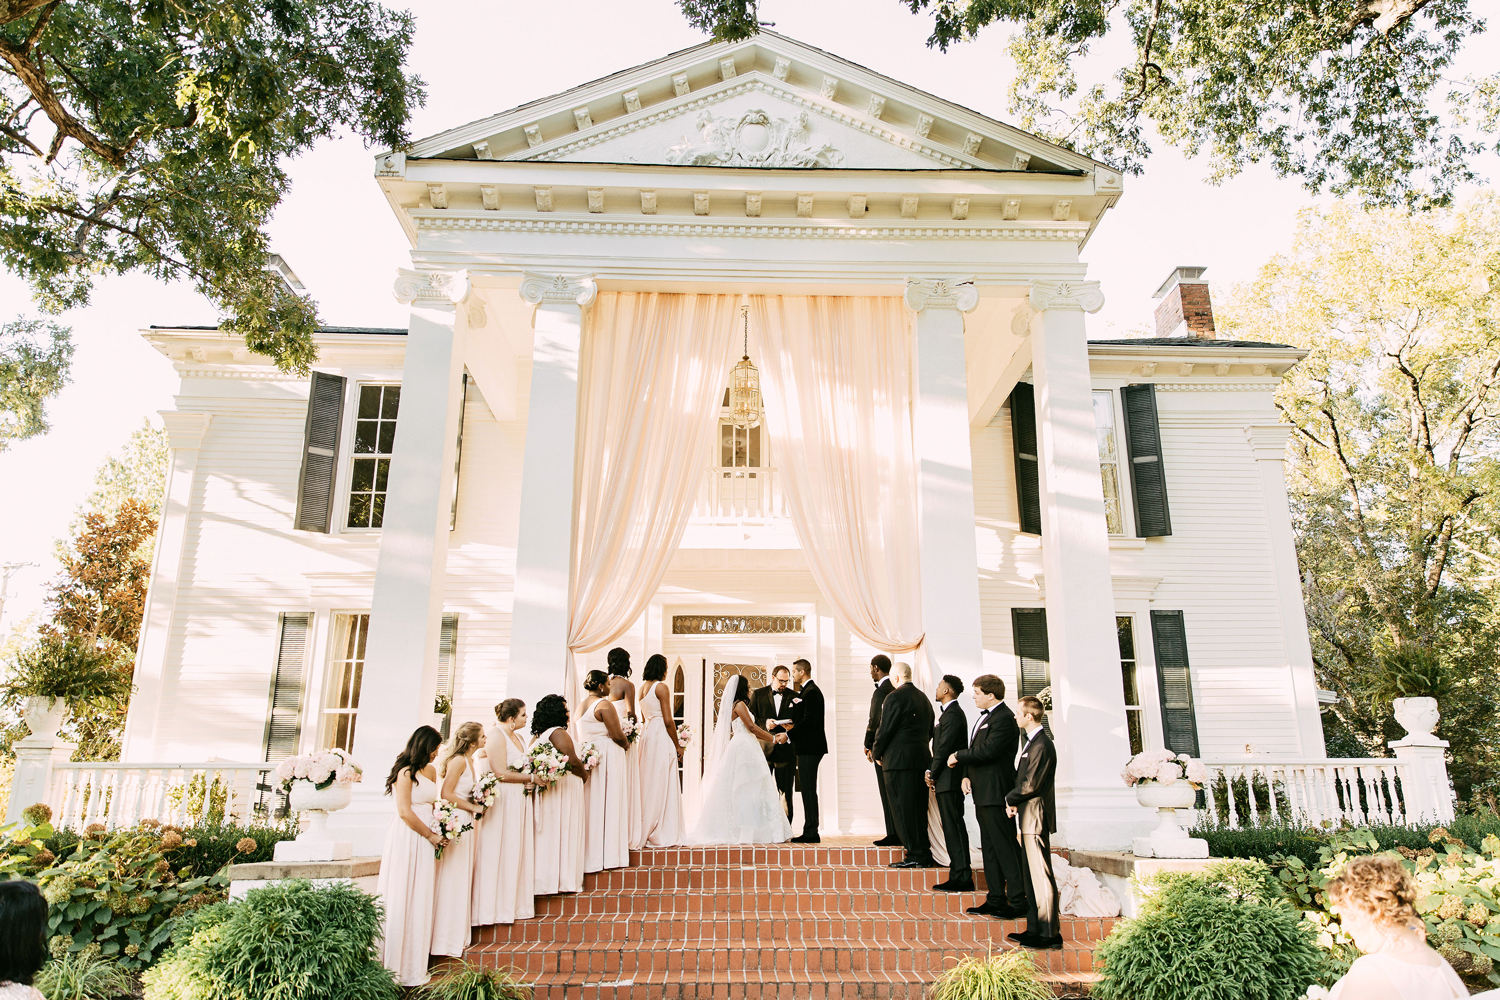 wedding ceremony on porch of mansion